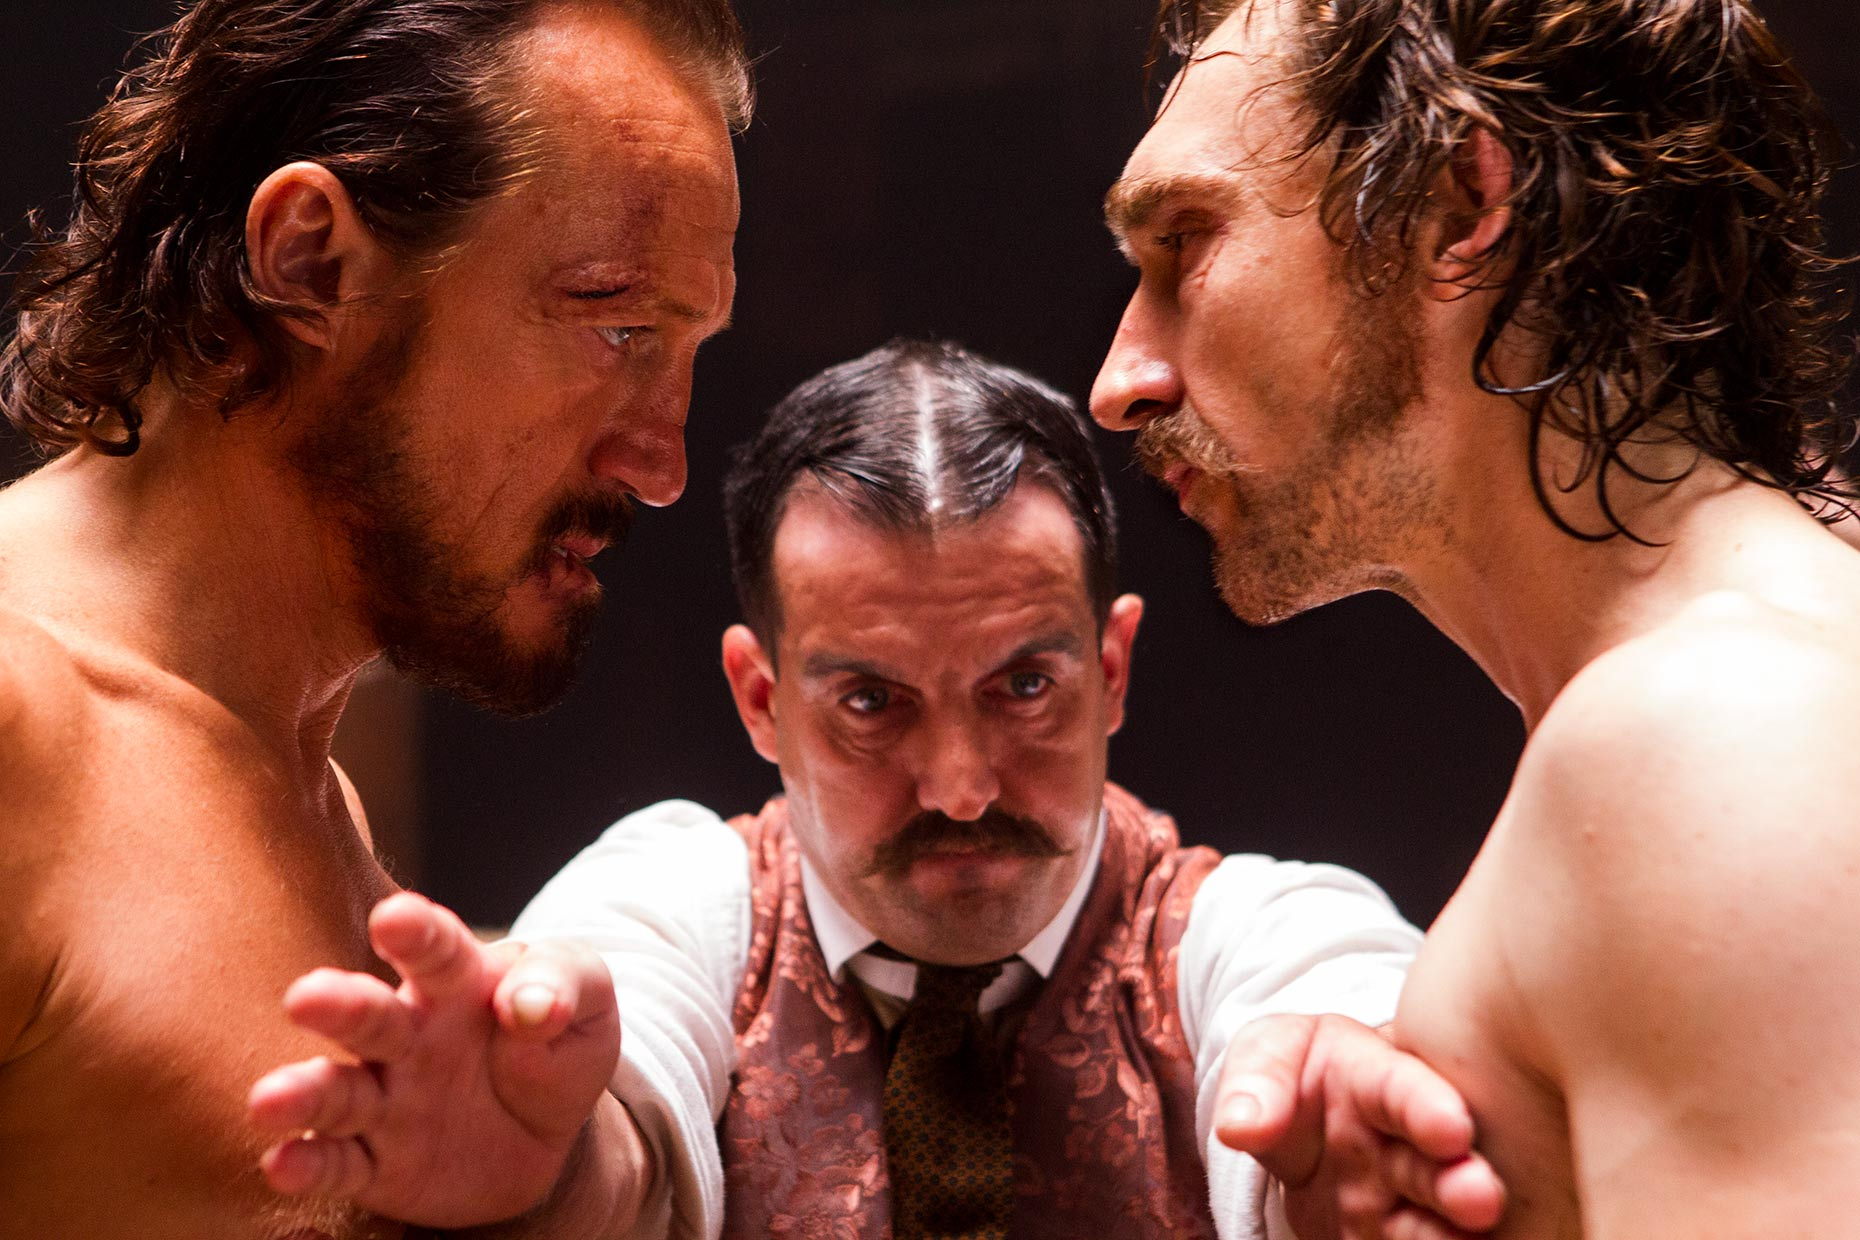 RIPPER STREET 2 Jerome Flynn and Joseph Mawle